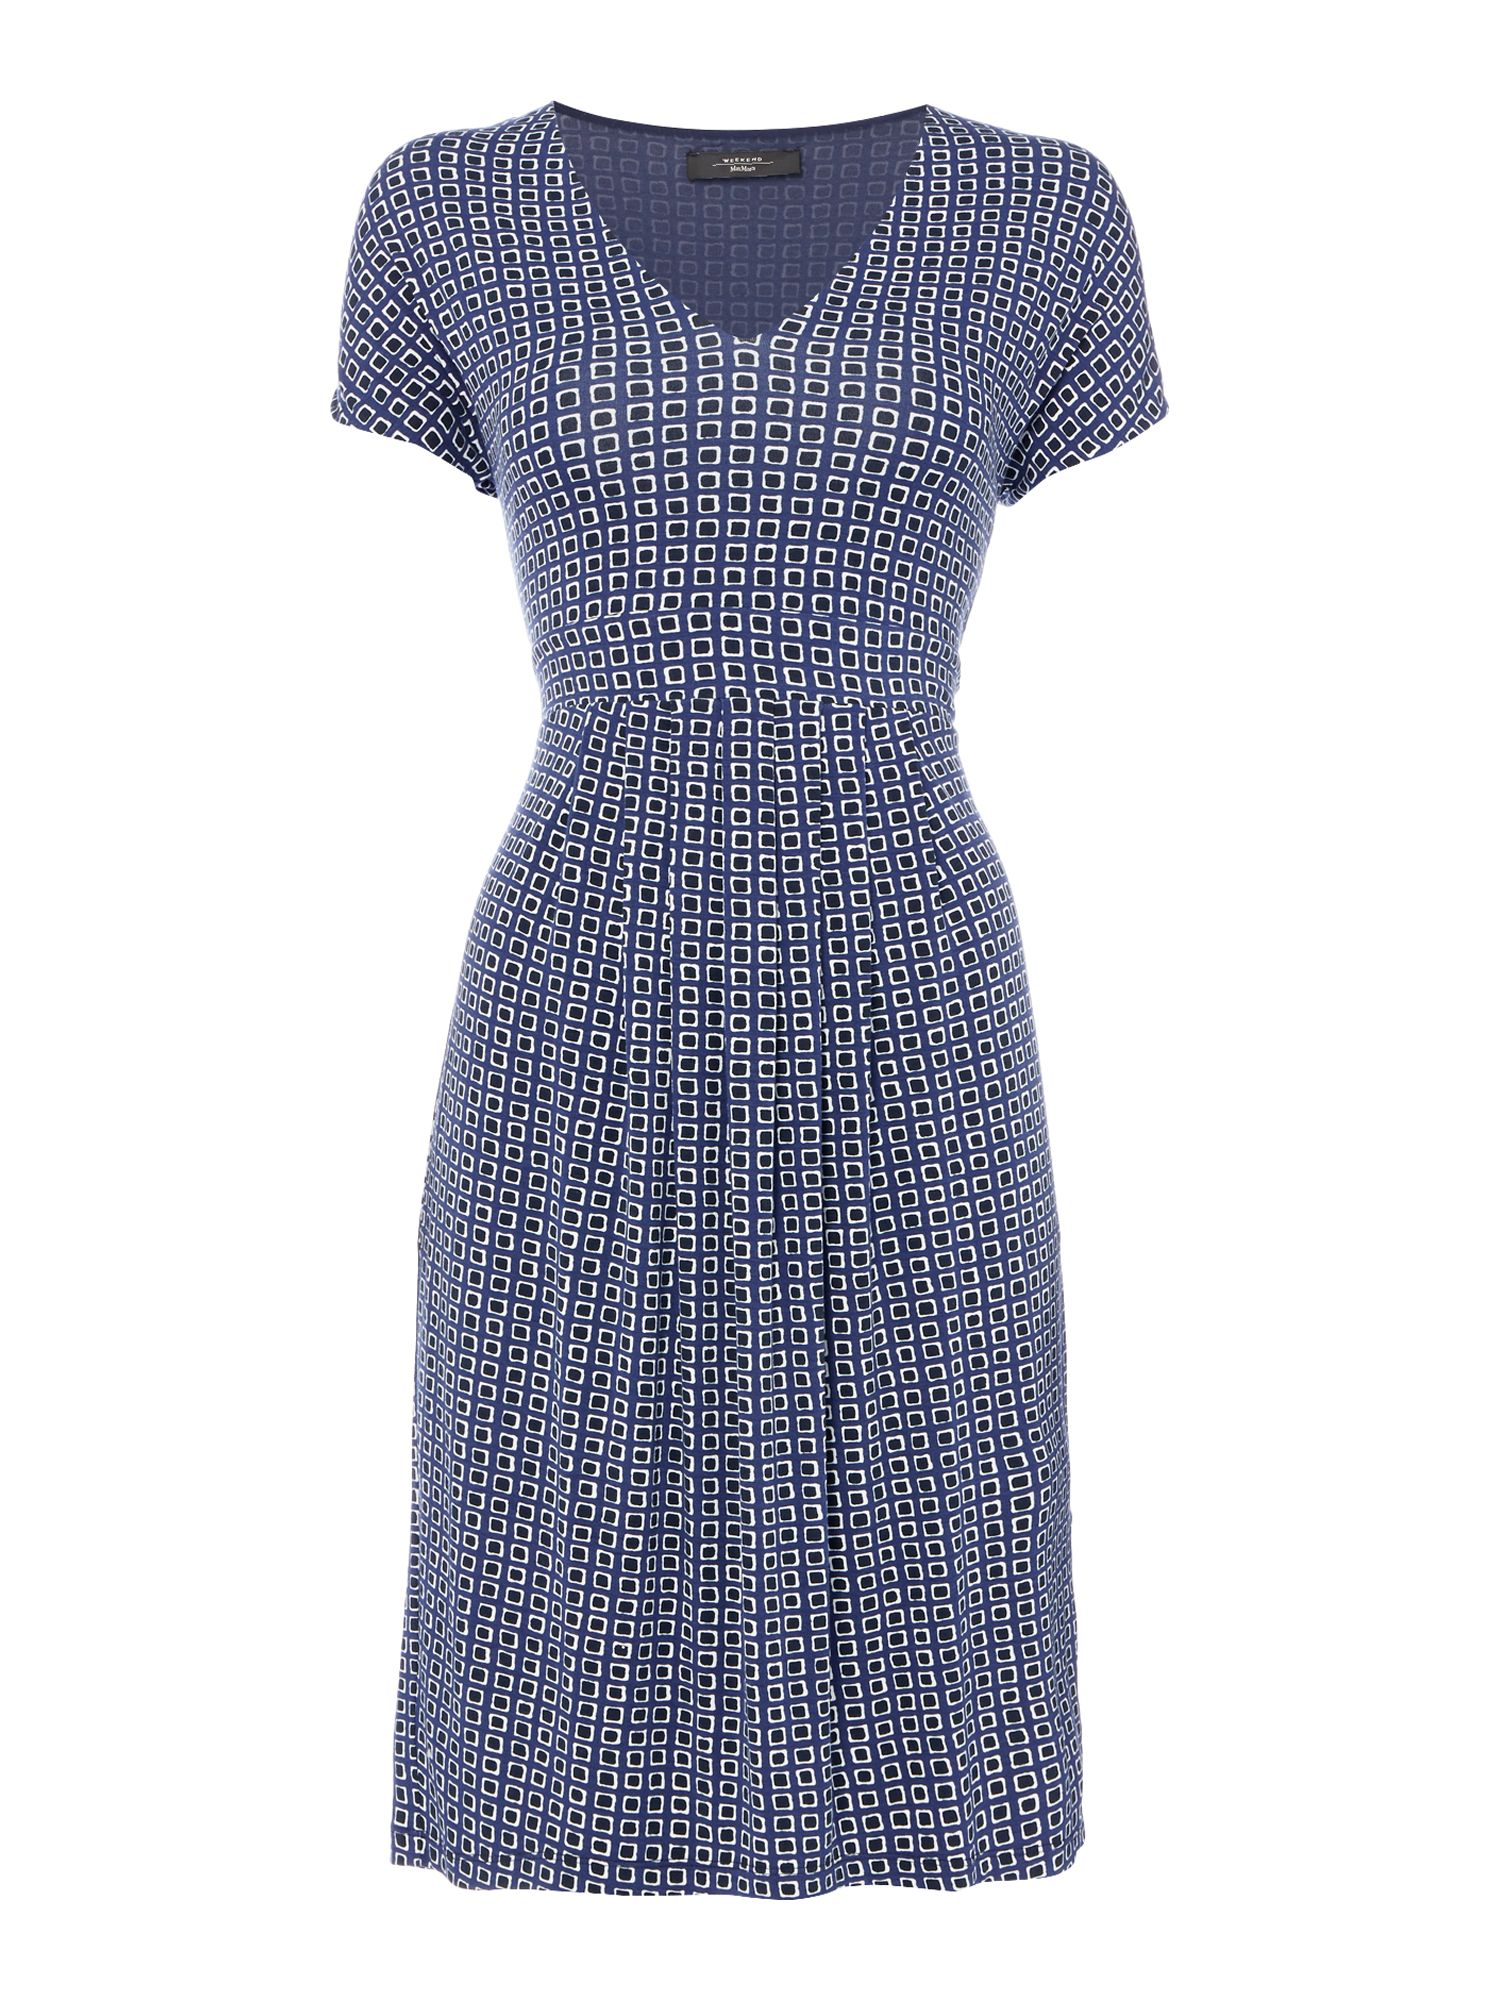 Max Mara Weekend Eiffel V Neck Short Sleeve Jersey Dress, Ultramarine